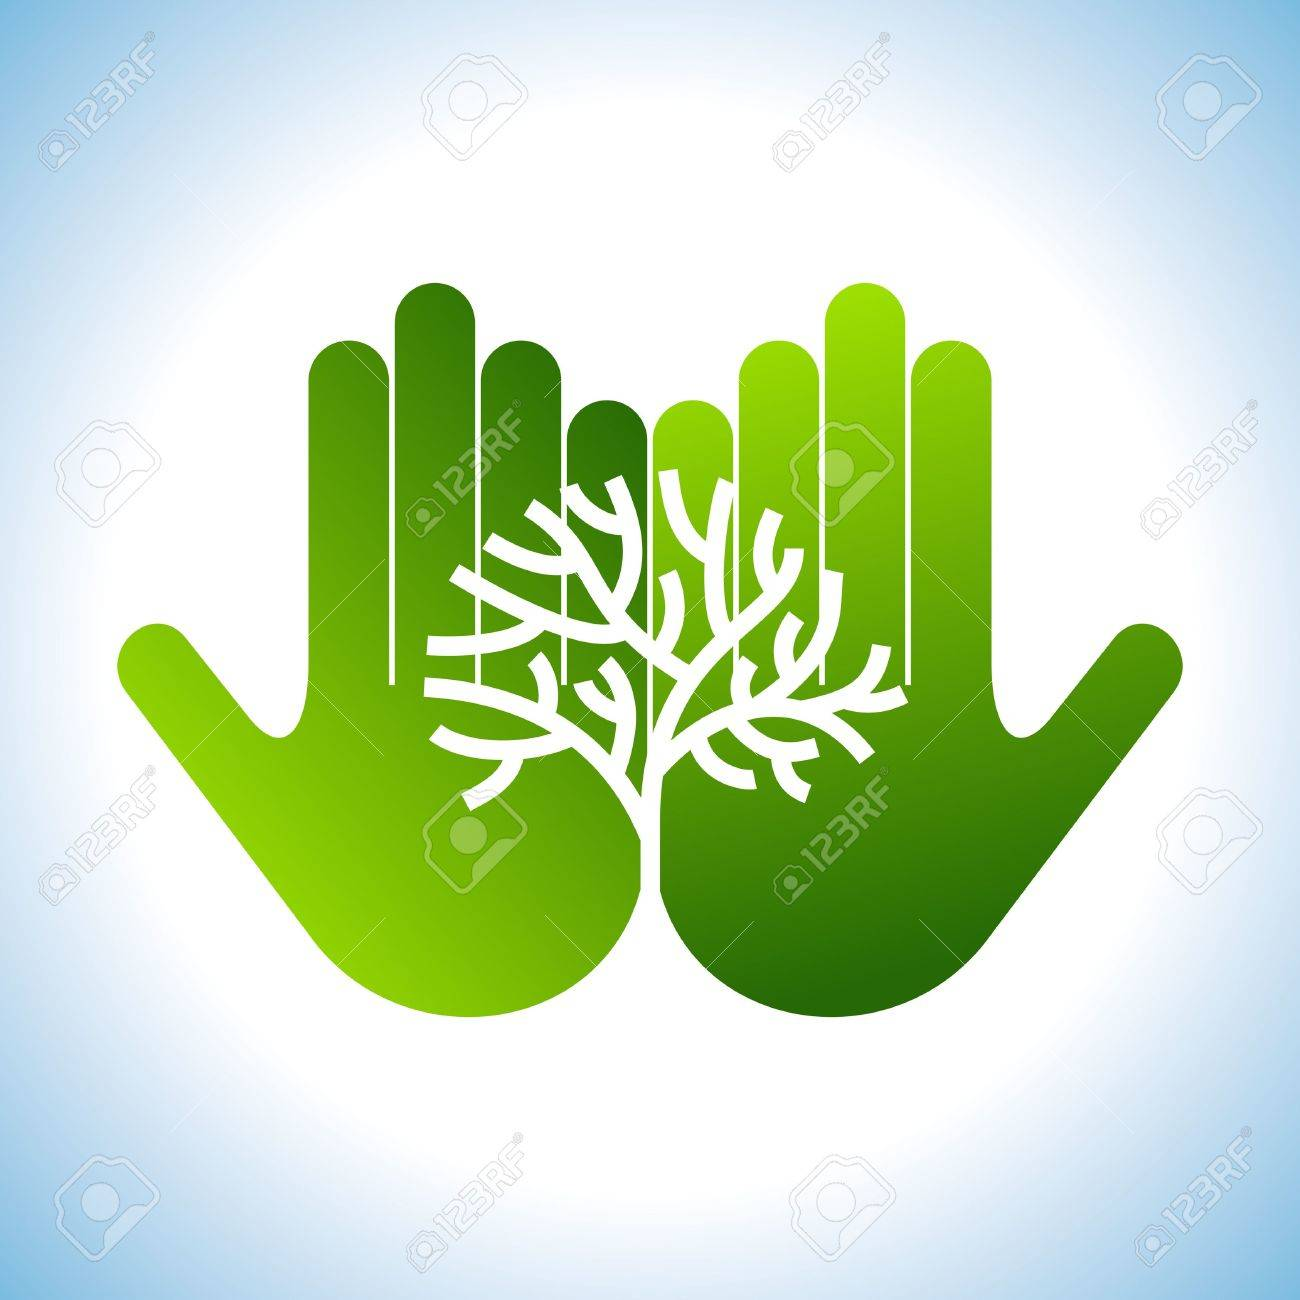 Eco friendly tree in hands illustration Stock Vector - 18210582